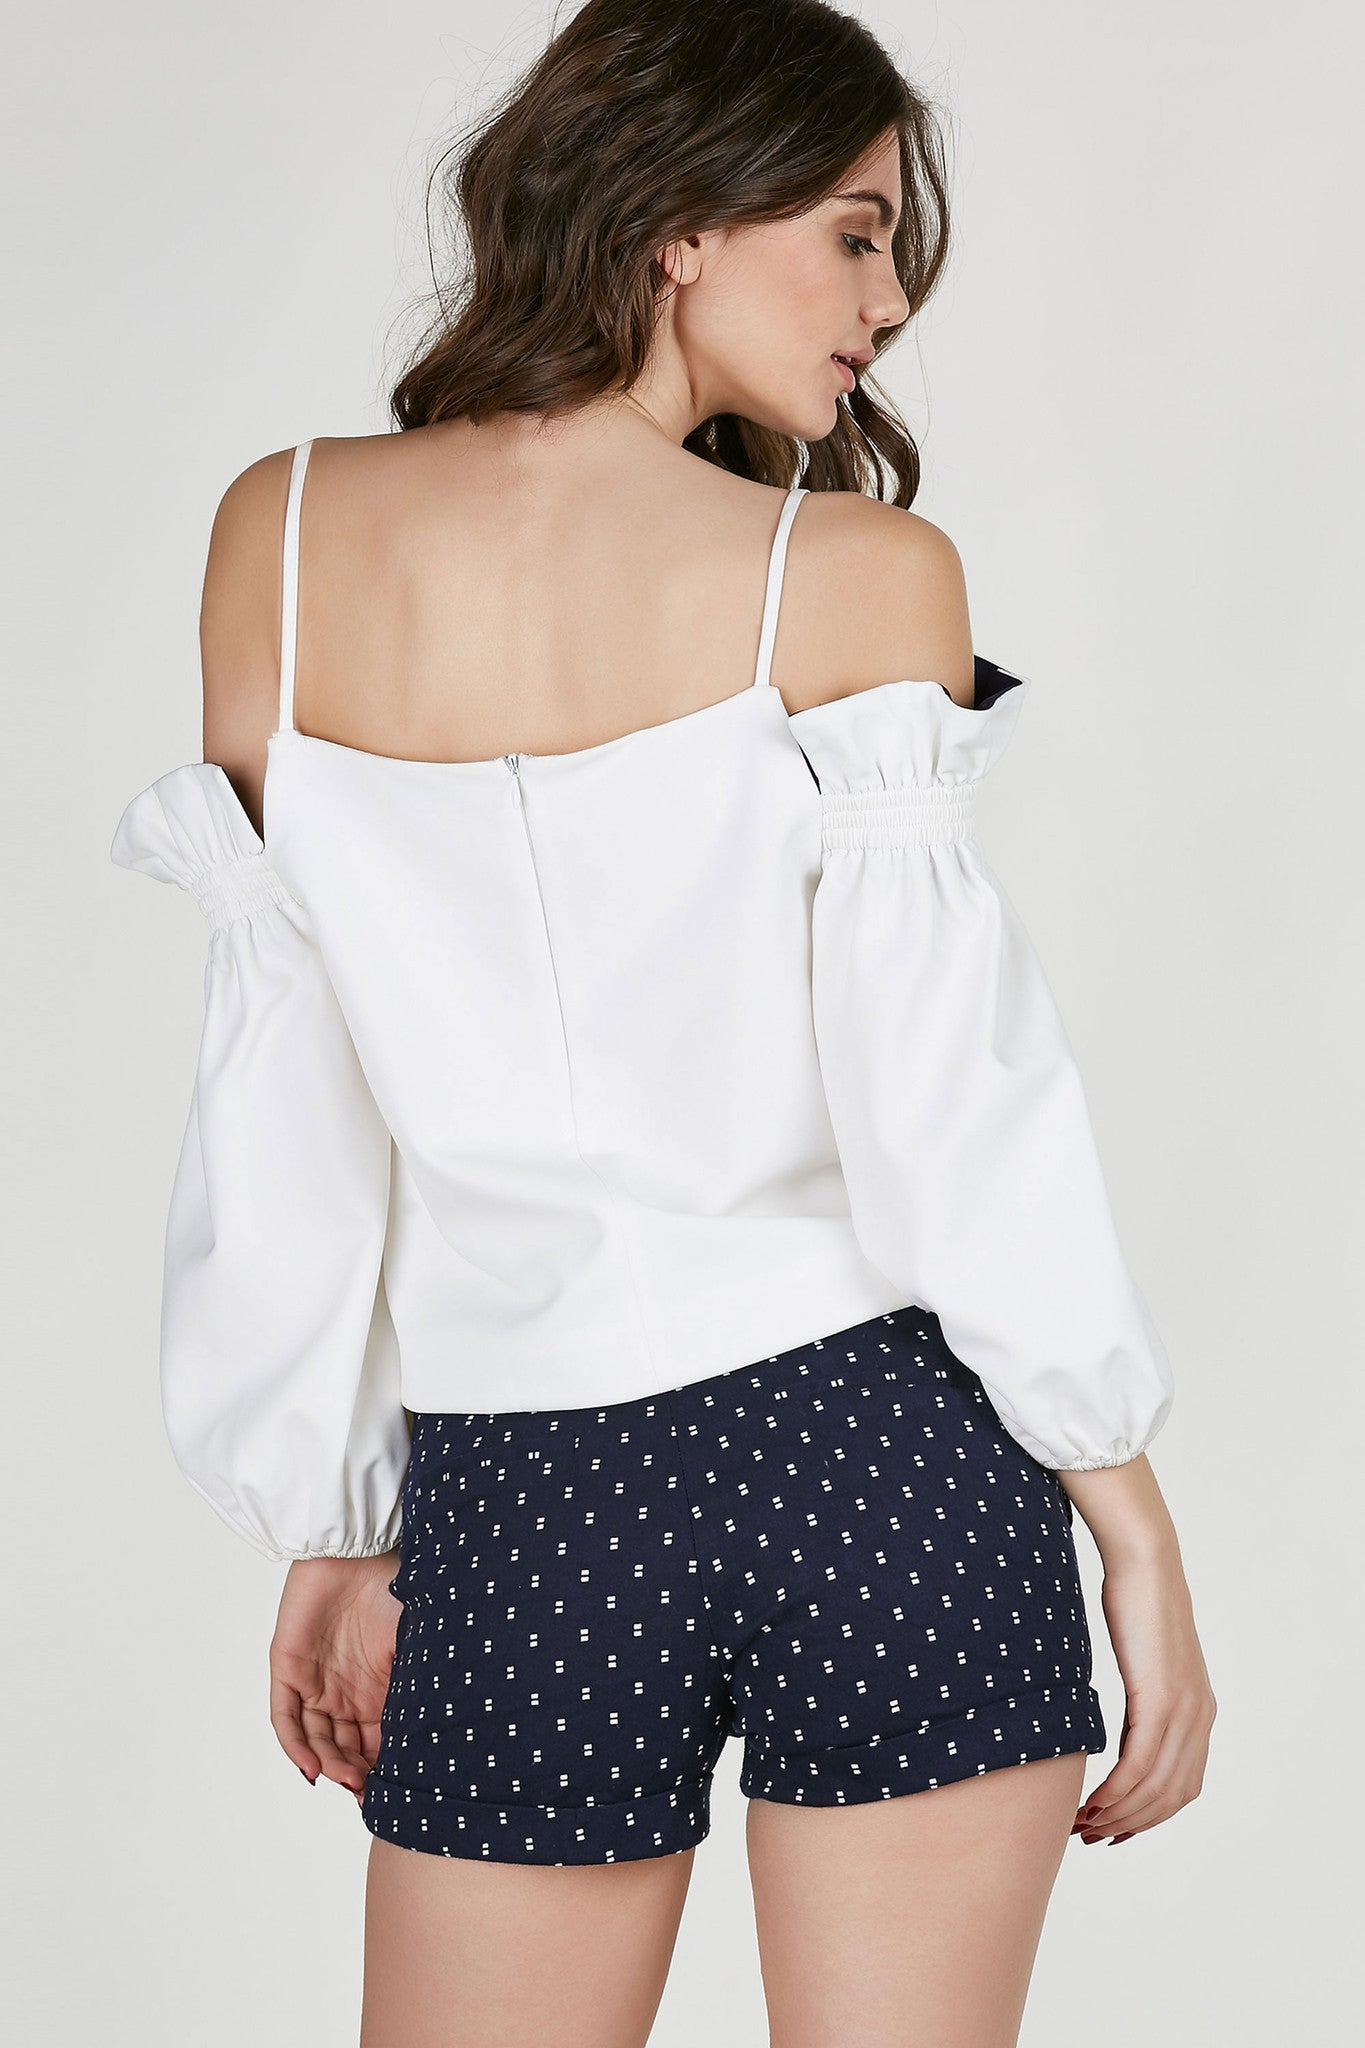 Free Your Mind Cold Shoulder Top